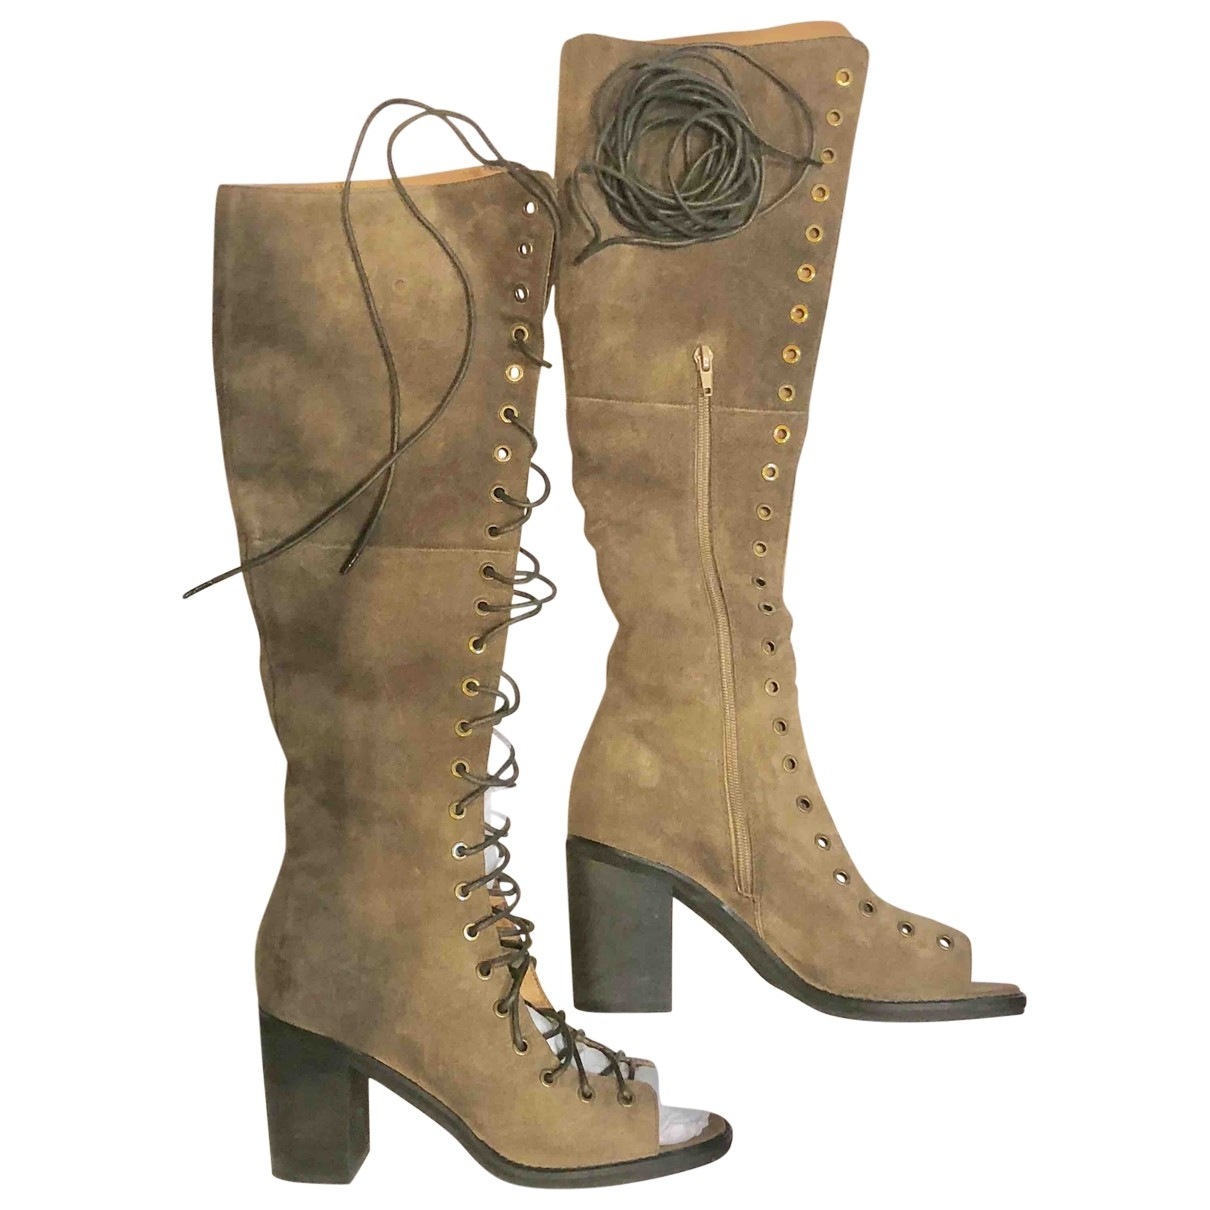 Jeffrey Campbell \N Beige Suede Boots for Women 10 US